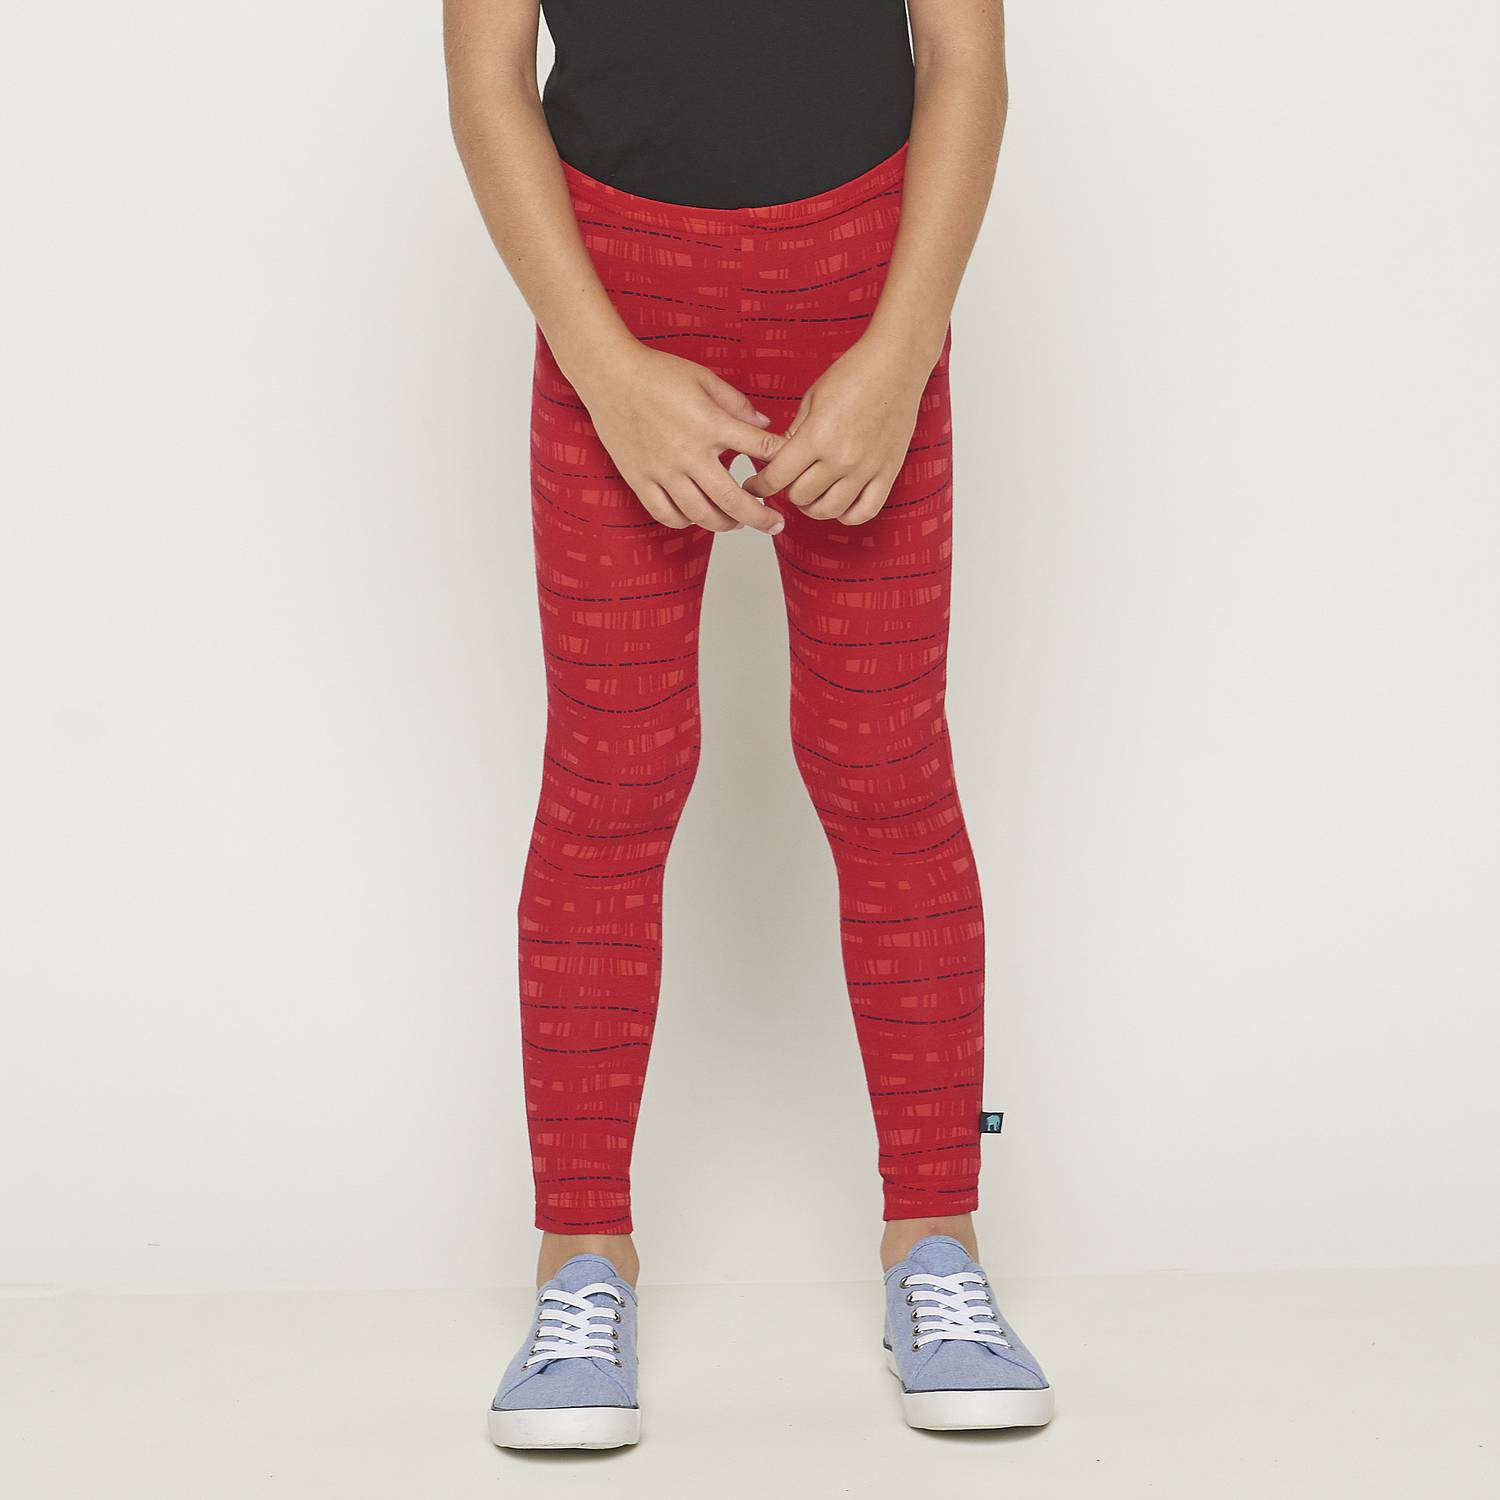 Leggings Koala waves chili